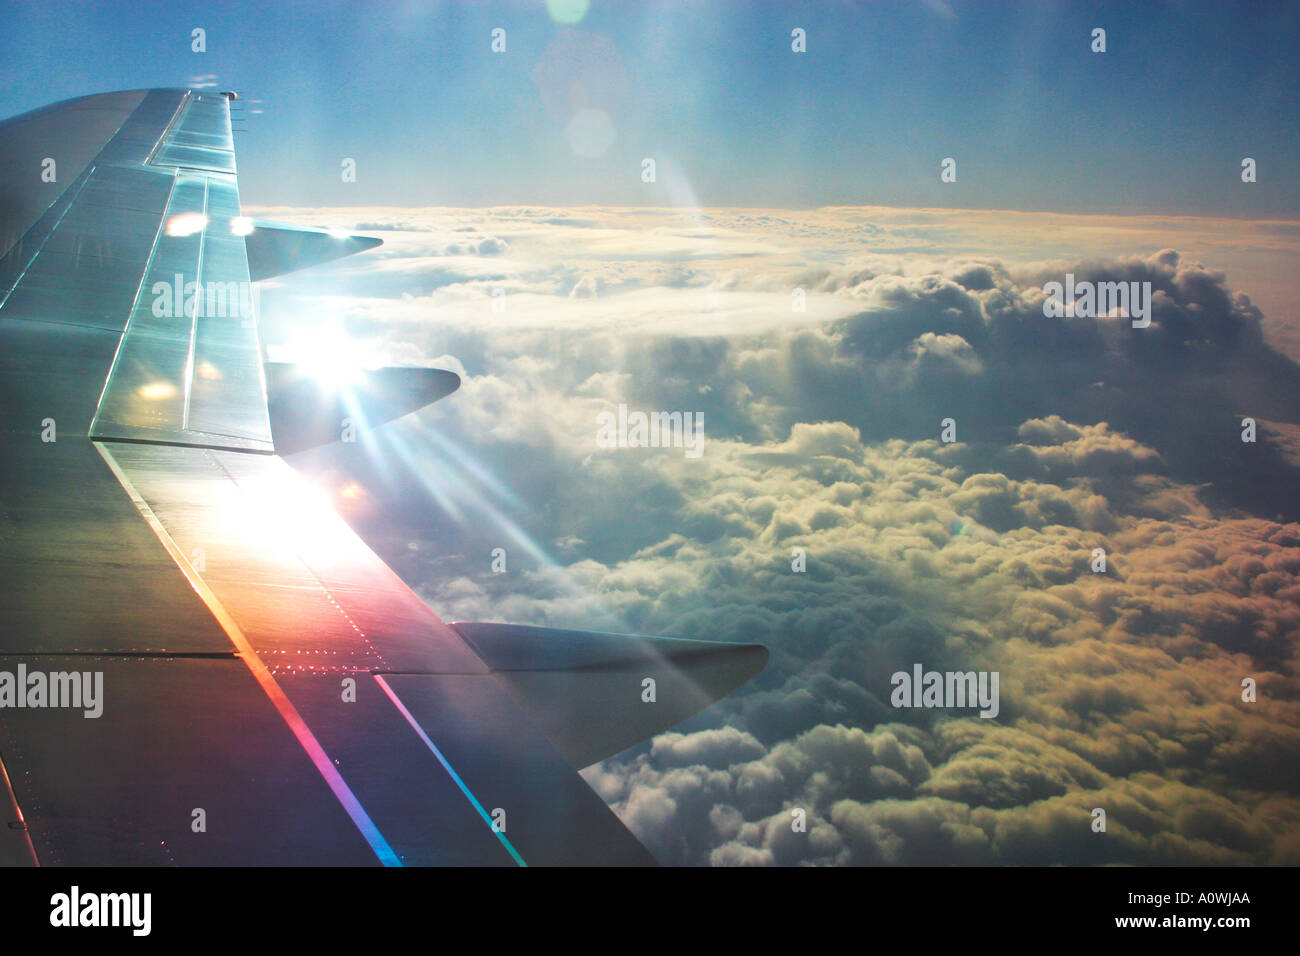 Jet Aircraft window view of sun and clouds over Europe from 30 000 feet - Stock Image